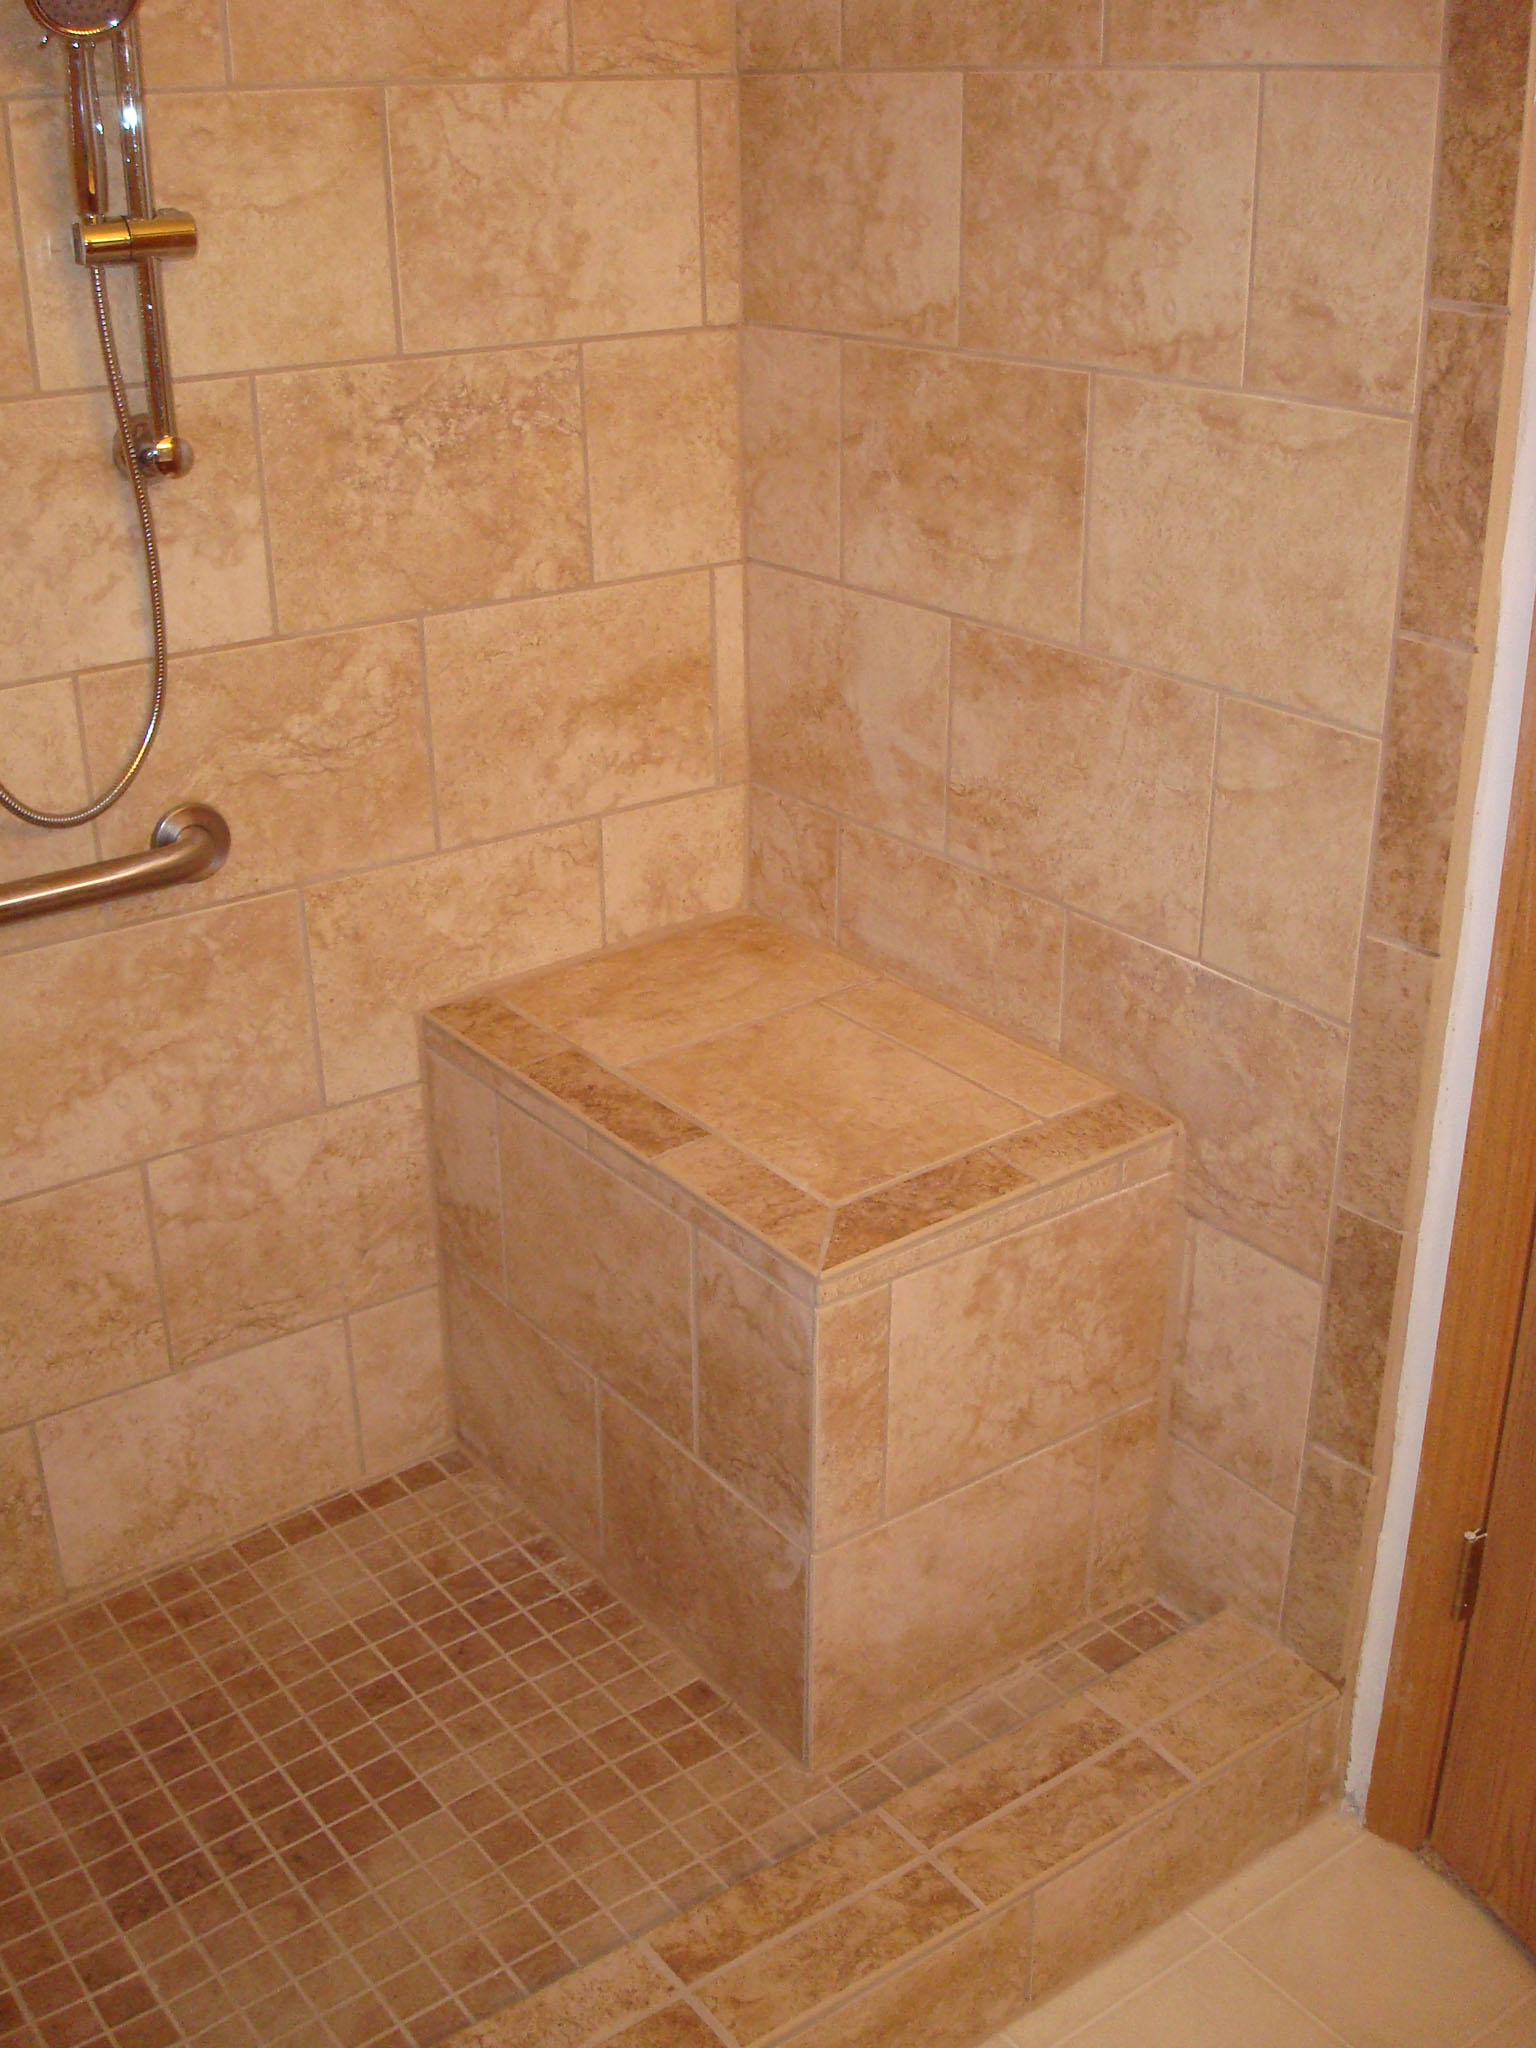 Bathroom Remodeling For Handicap Accessibility : Handicap bathroom remodel halo construction services llc